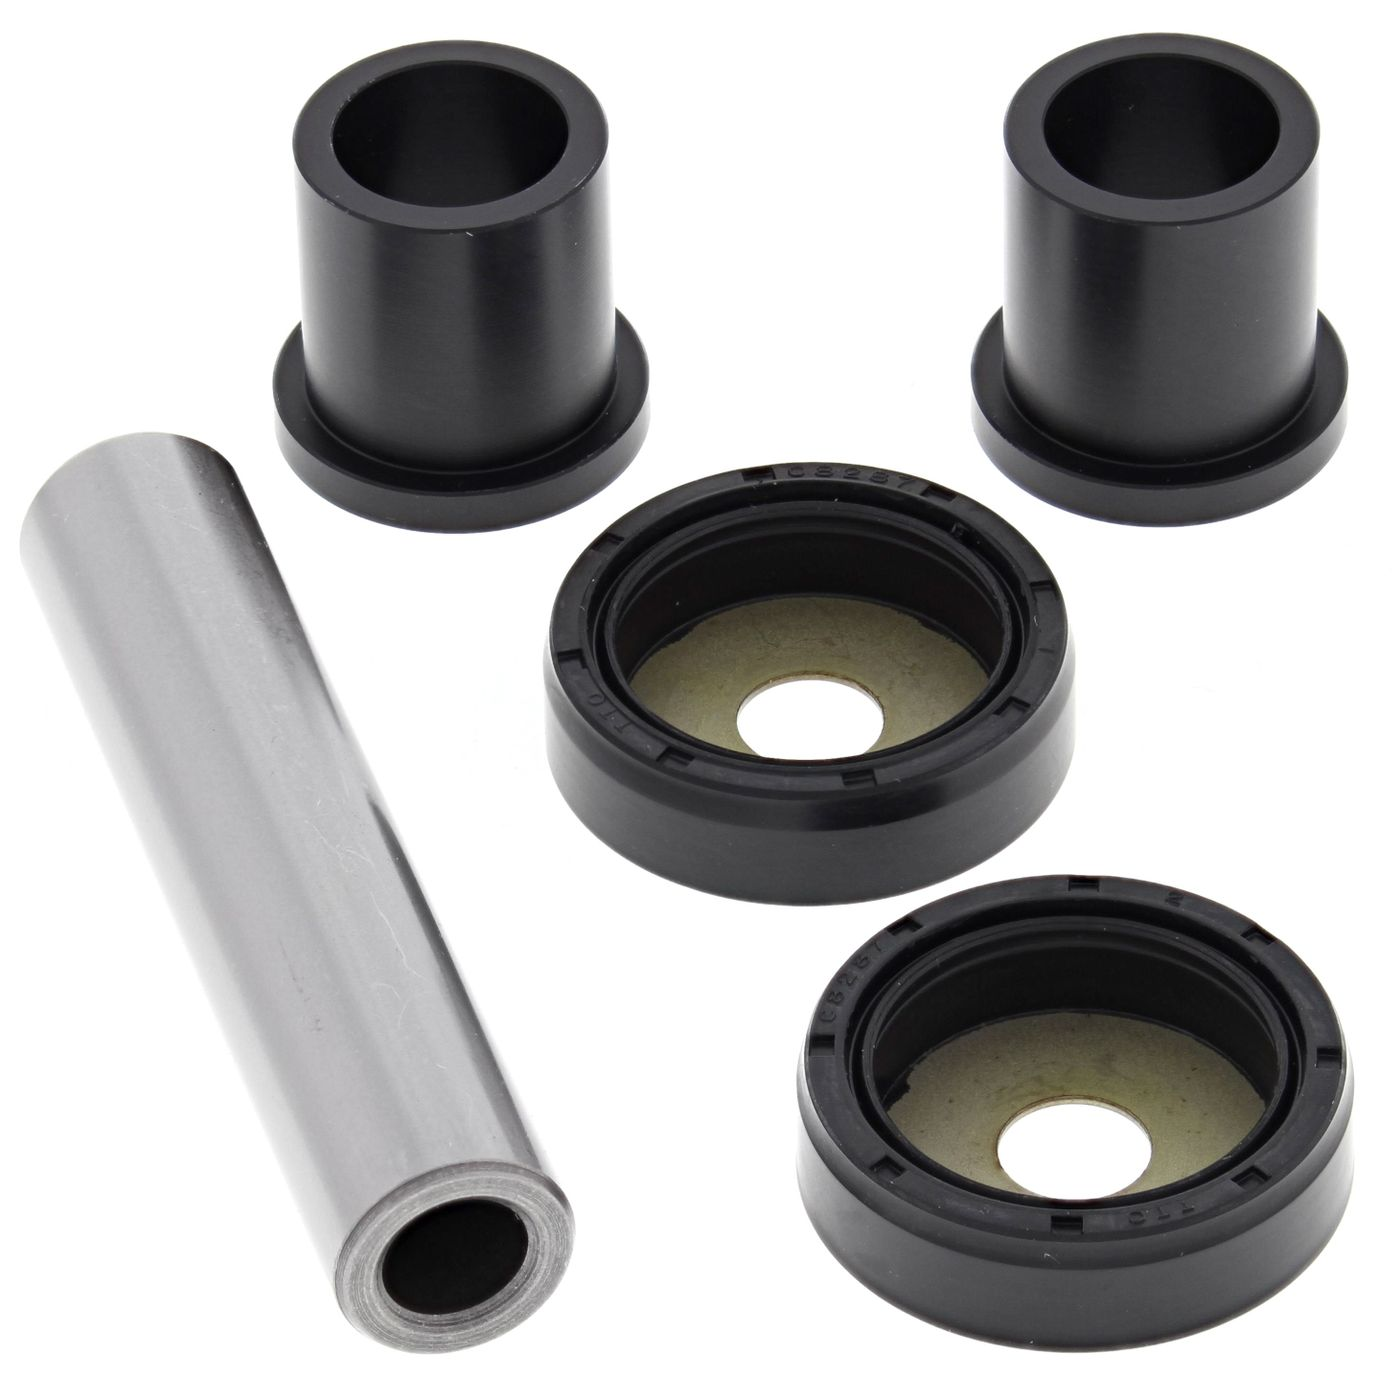 wrp stub axle repair kit - WRP421006 image